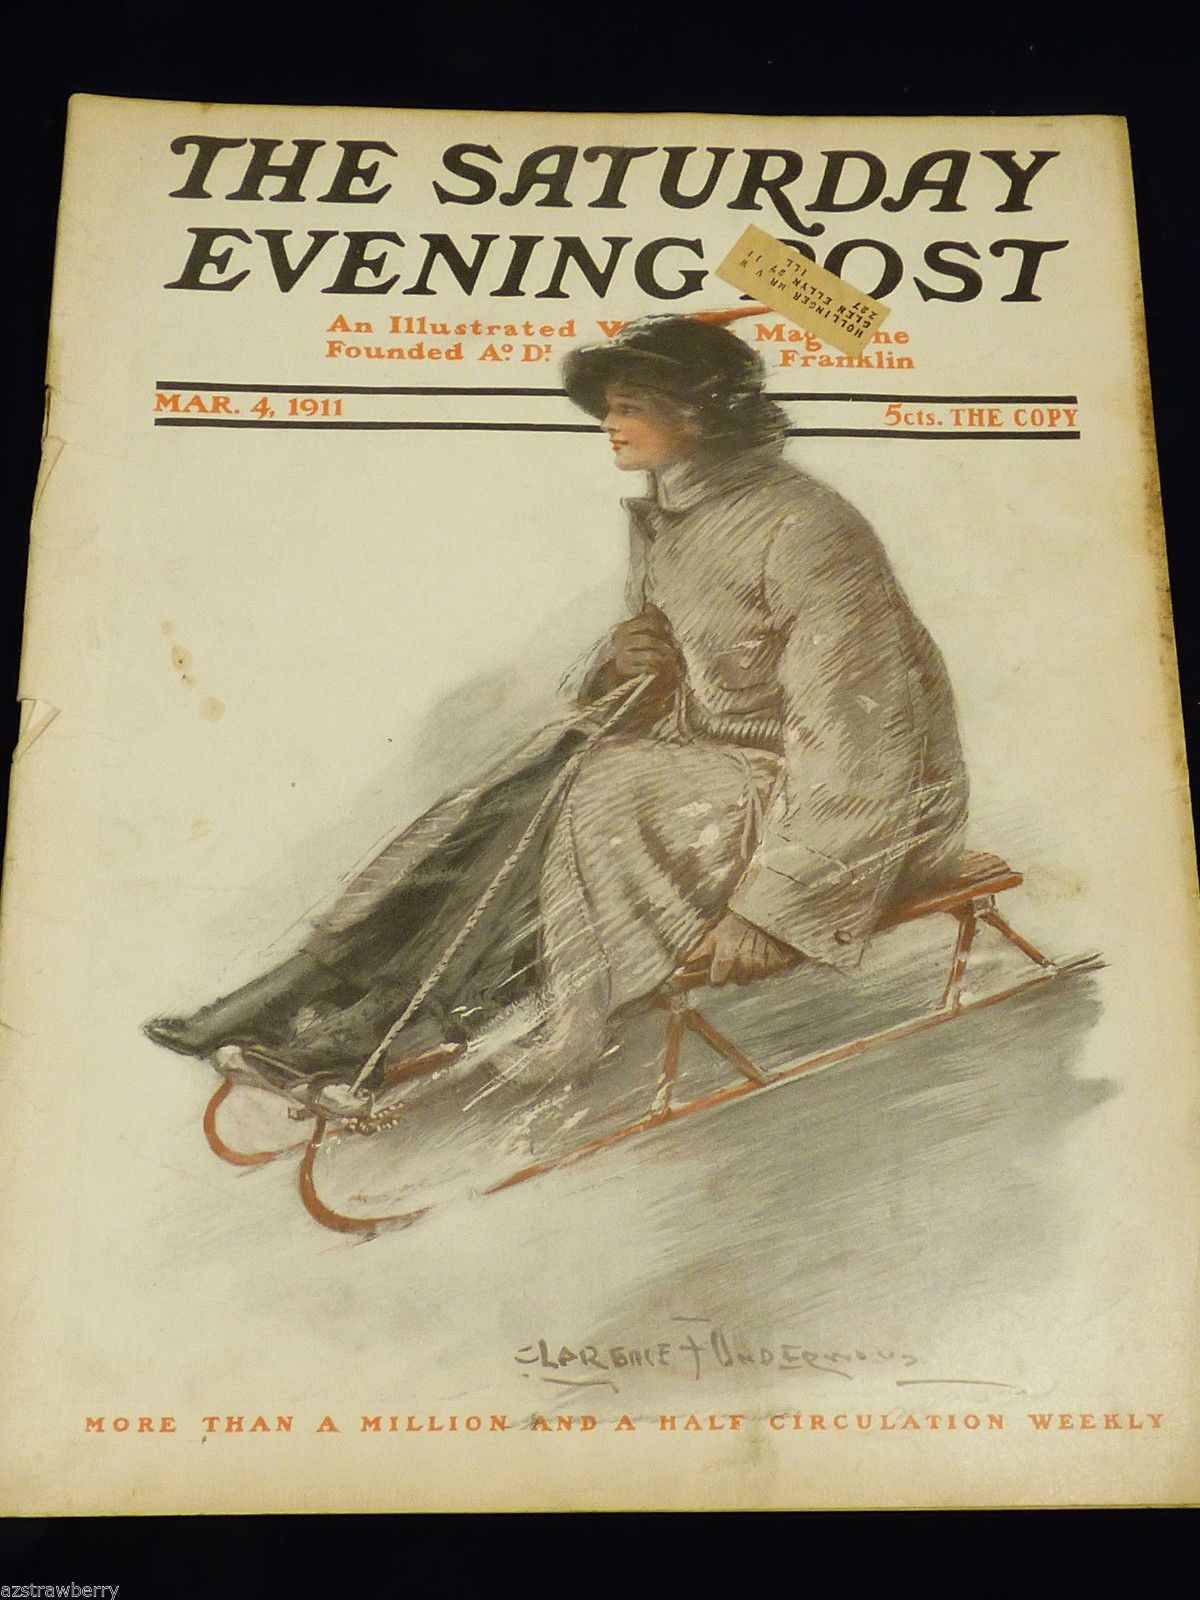 VTG Rge Saturday Evening Post Magazine March 4 1911 Illustrated - Magazine Back Issues